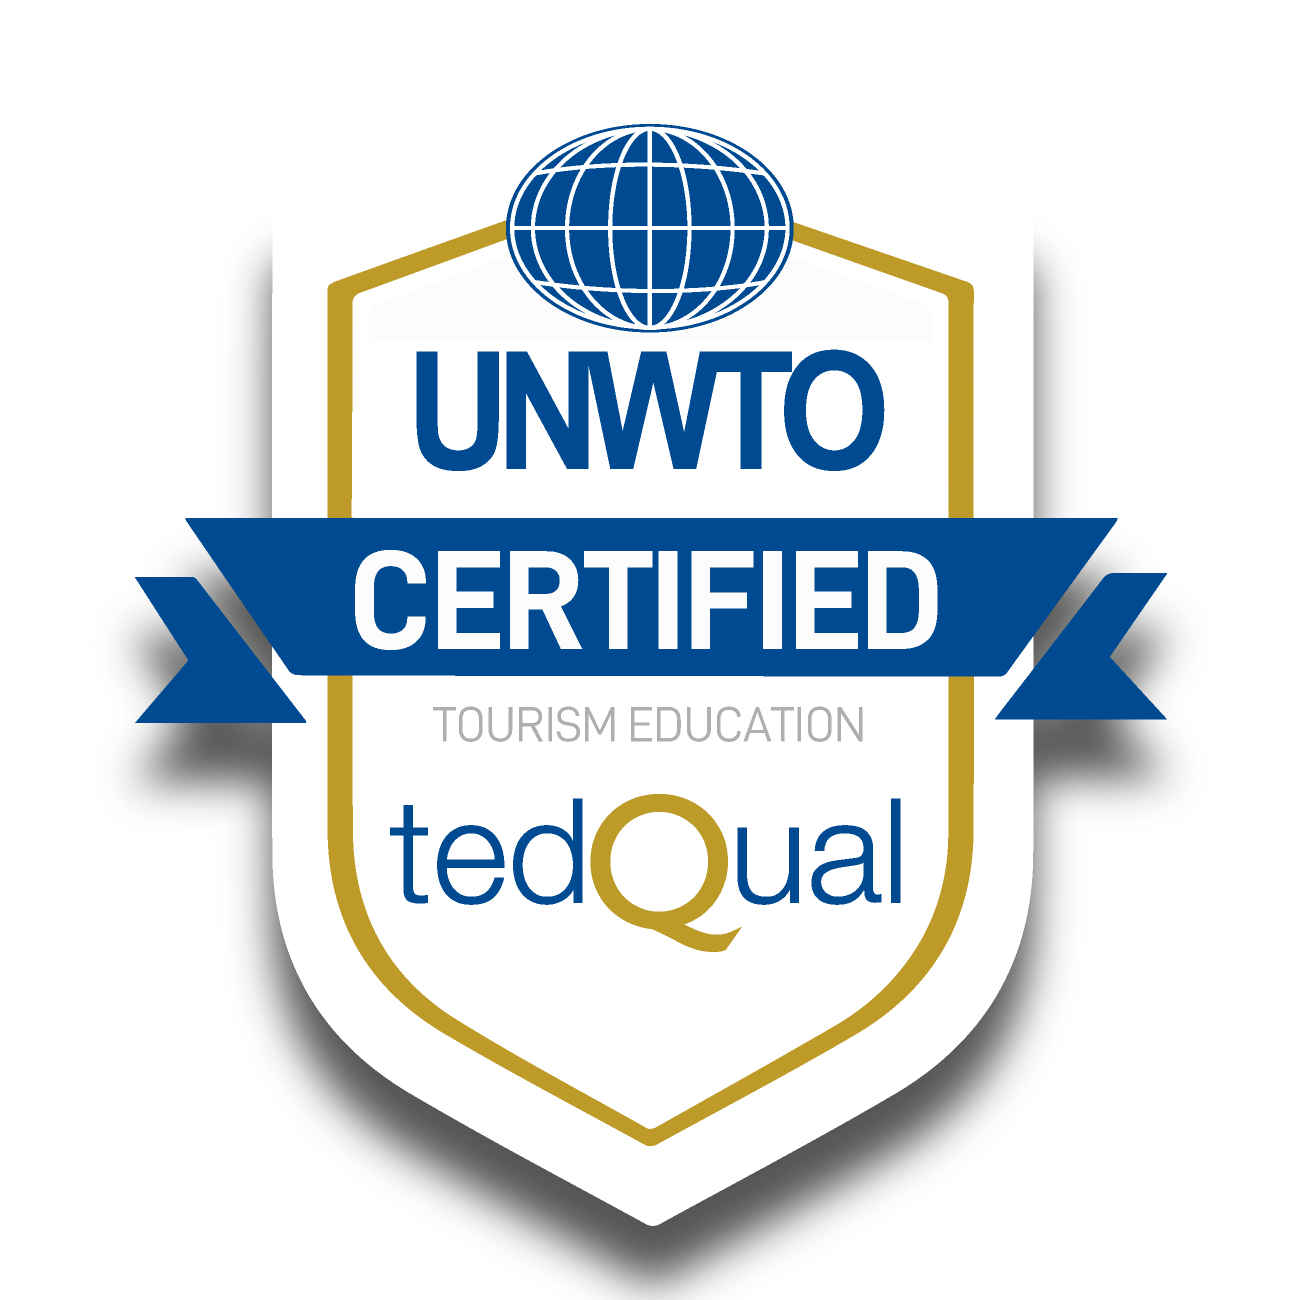 UNWTO certified